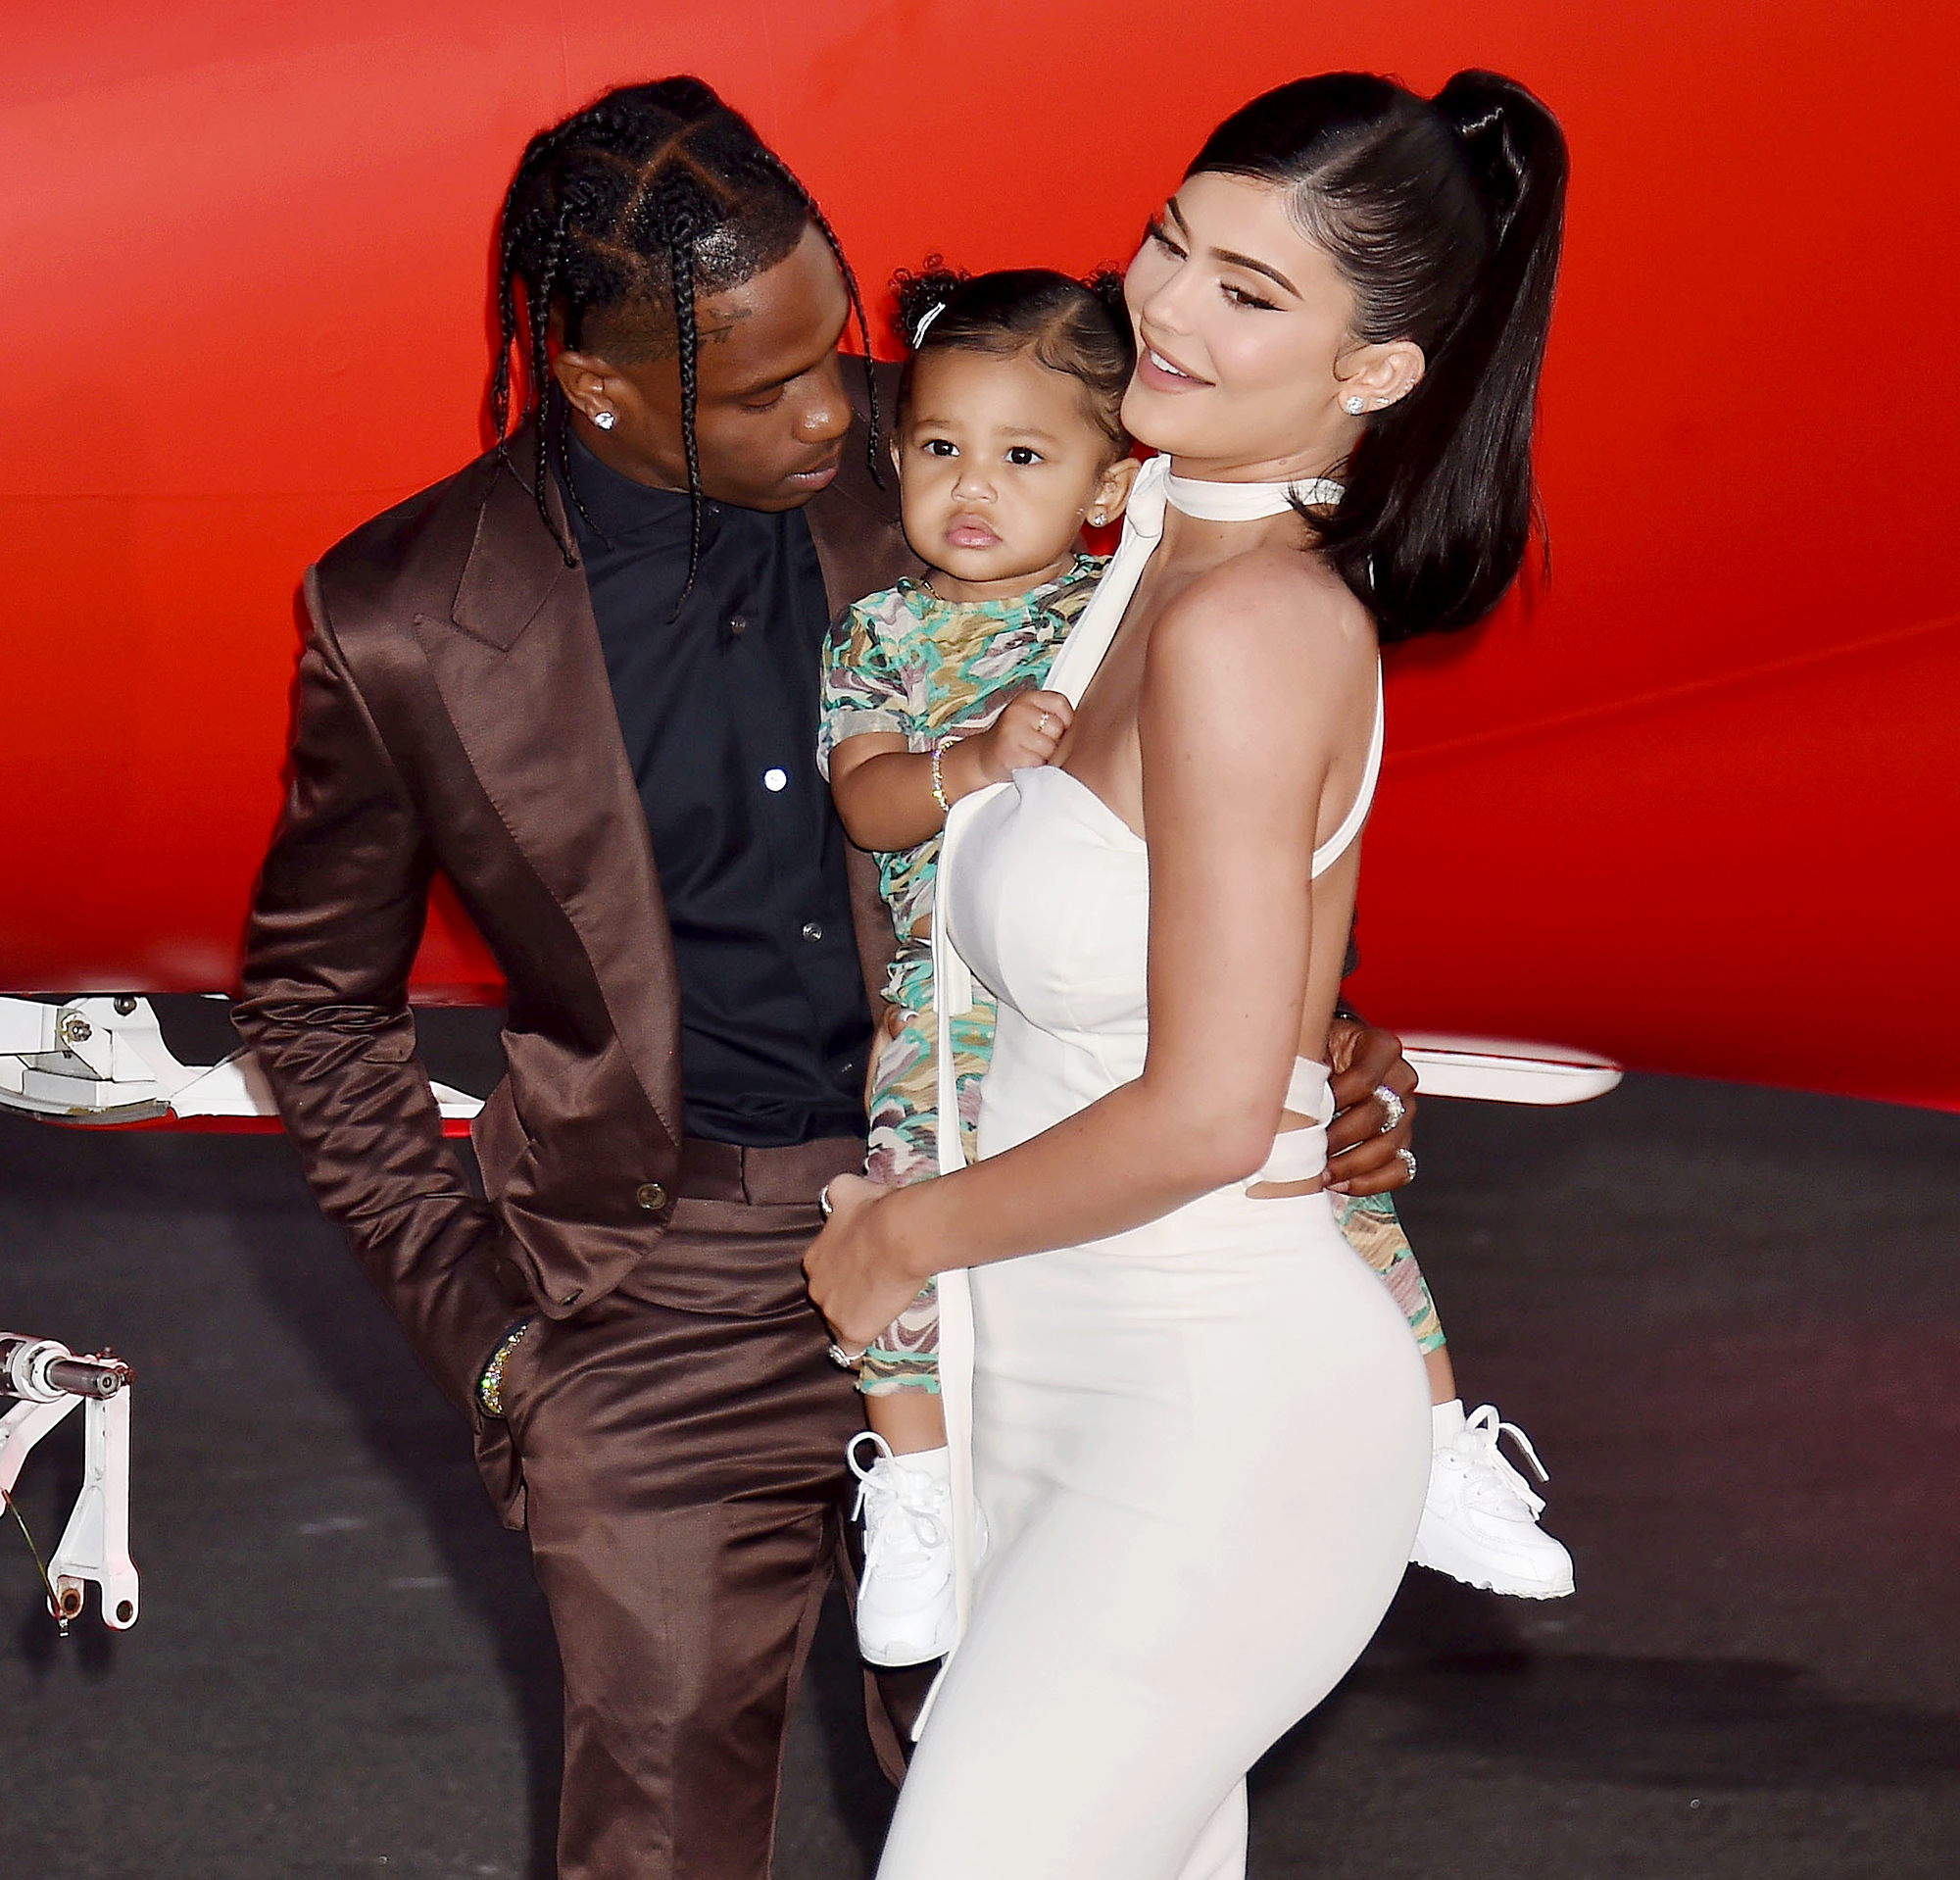 Kylie Jenner Travis Scott Stormi At Halloween Park Great Team Kylie jenner and travis scott began dating in 2017 and welcomed their daughter in february 2018. kylie jenner travis scott stormi at